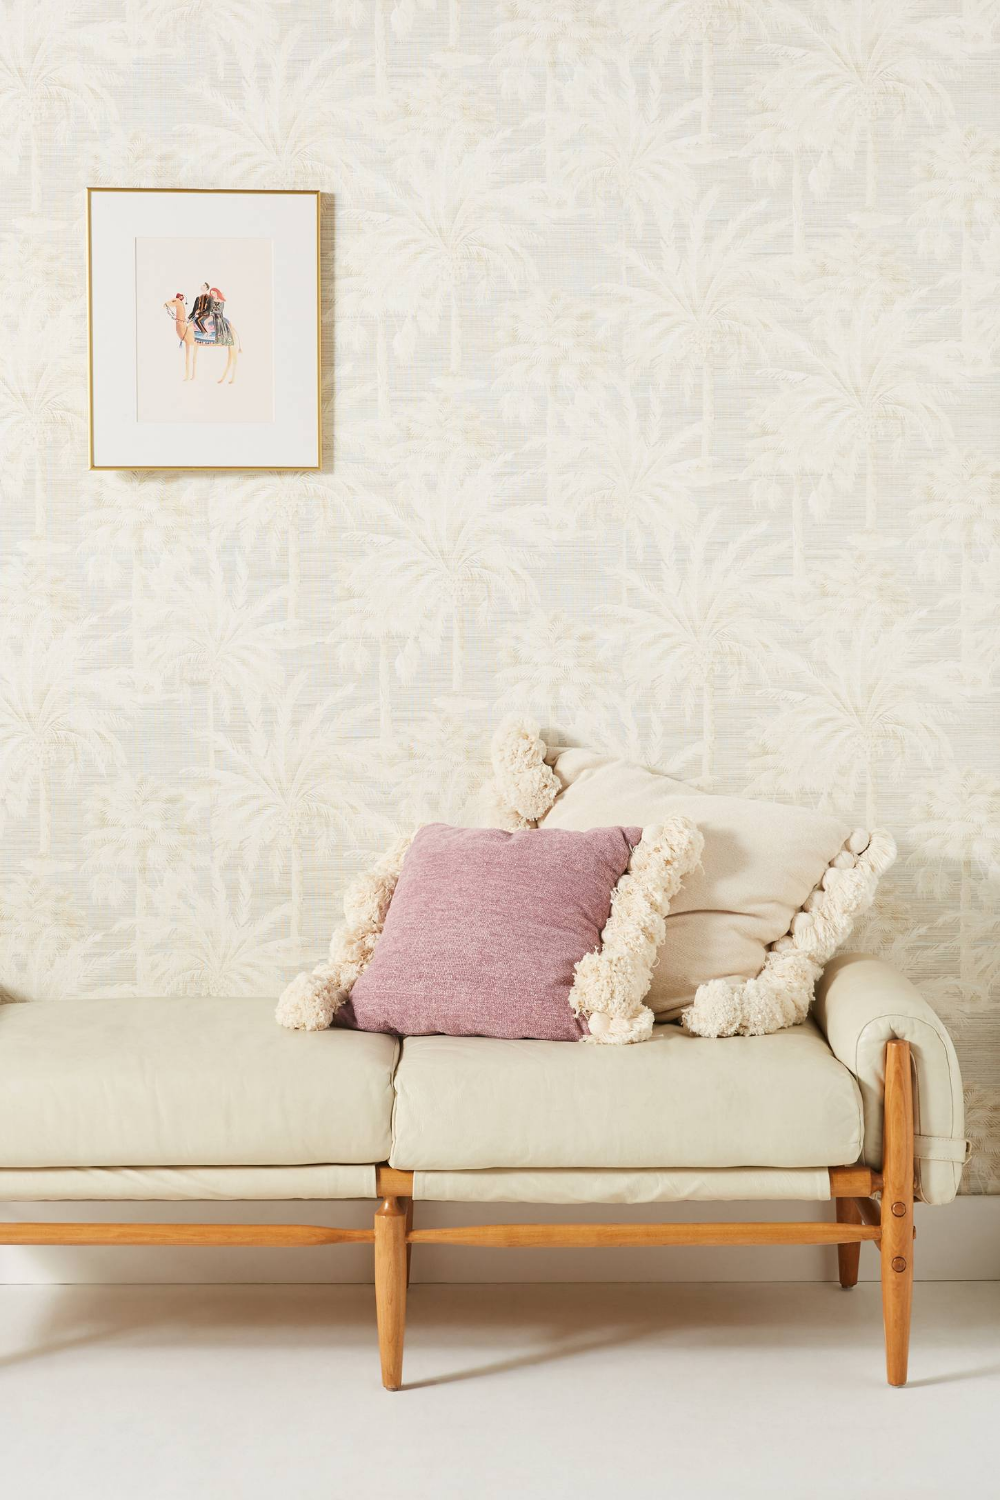 Tree Design Wallpaper Living Room: Dream Of Palm Trees Wallpaper By Anthropologie In Beige